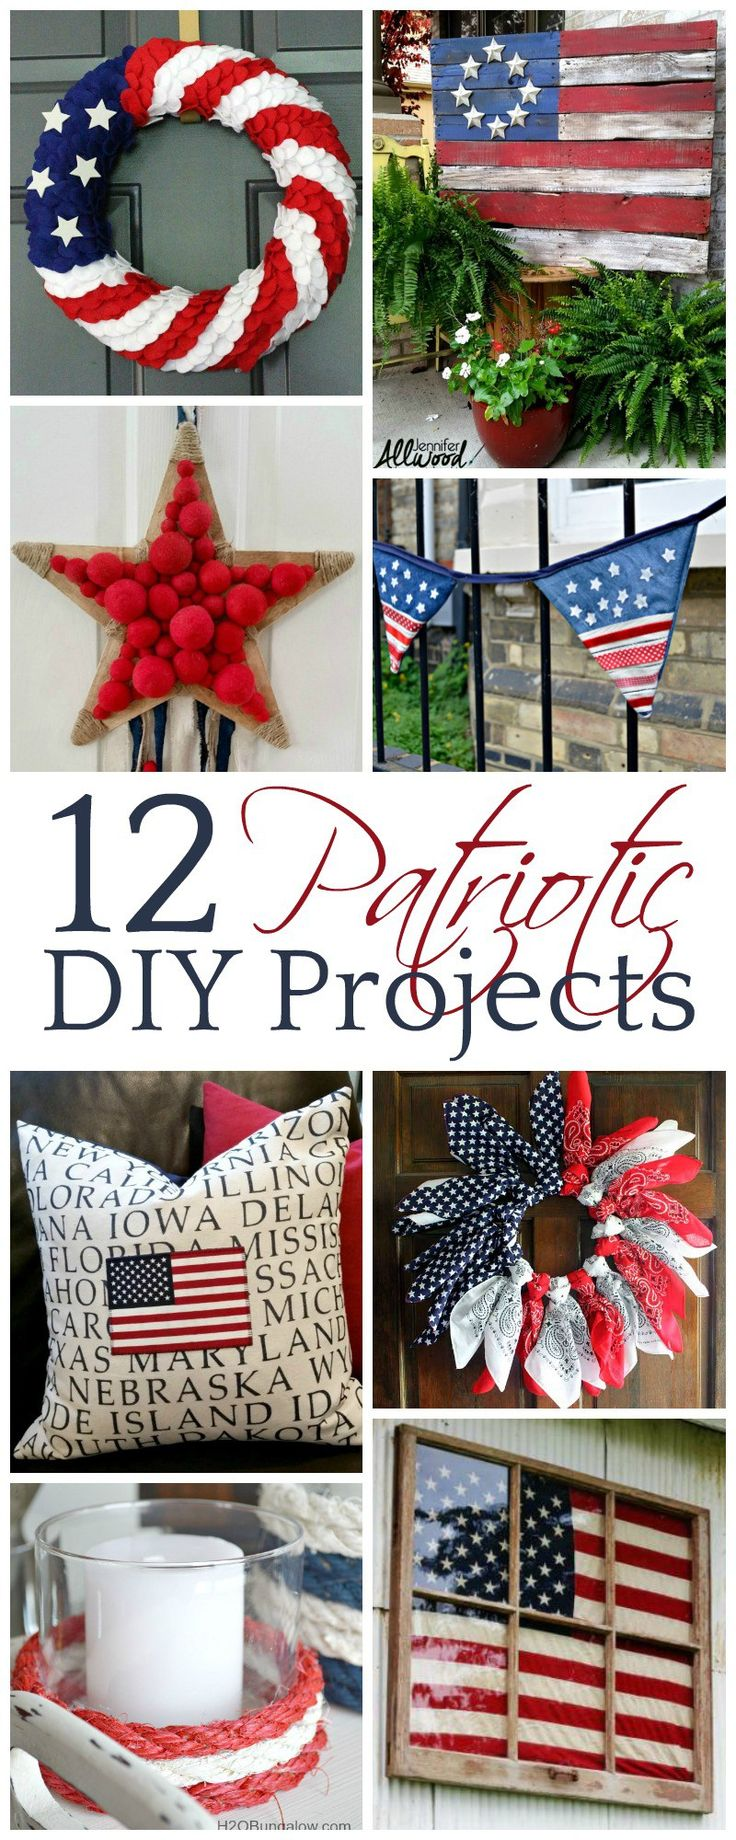 Best 25+ 4th of july decorations ideas on Pinterest | Fourth of ...